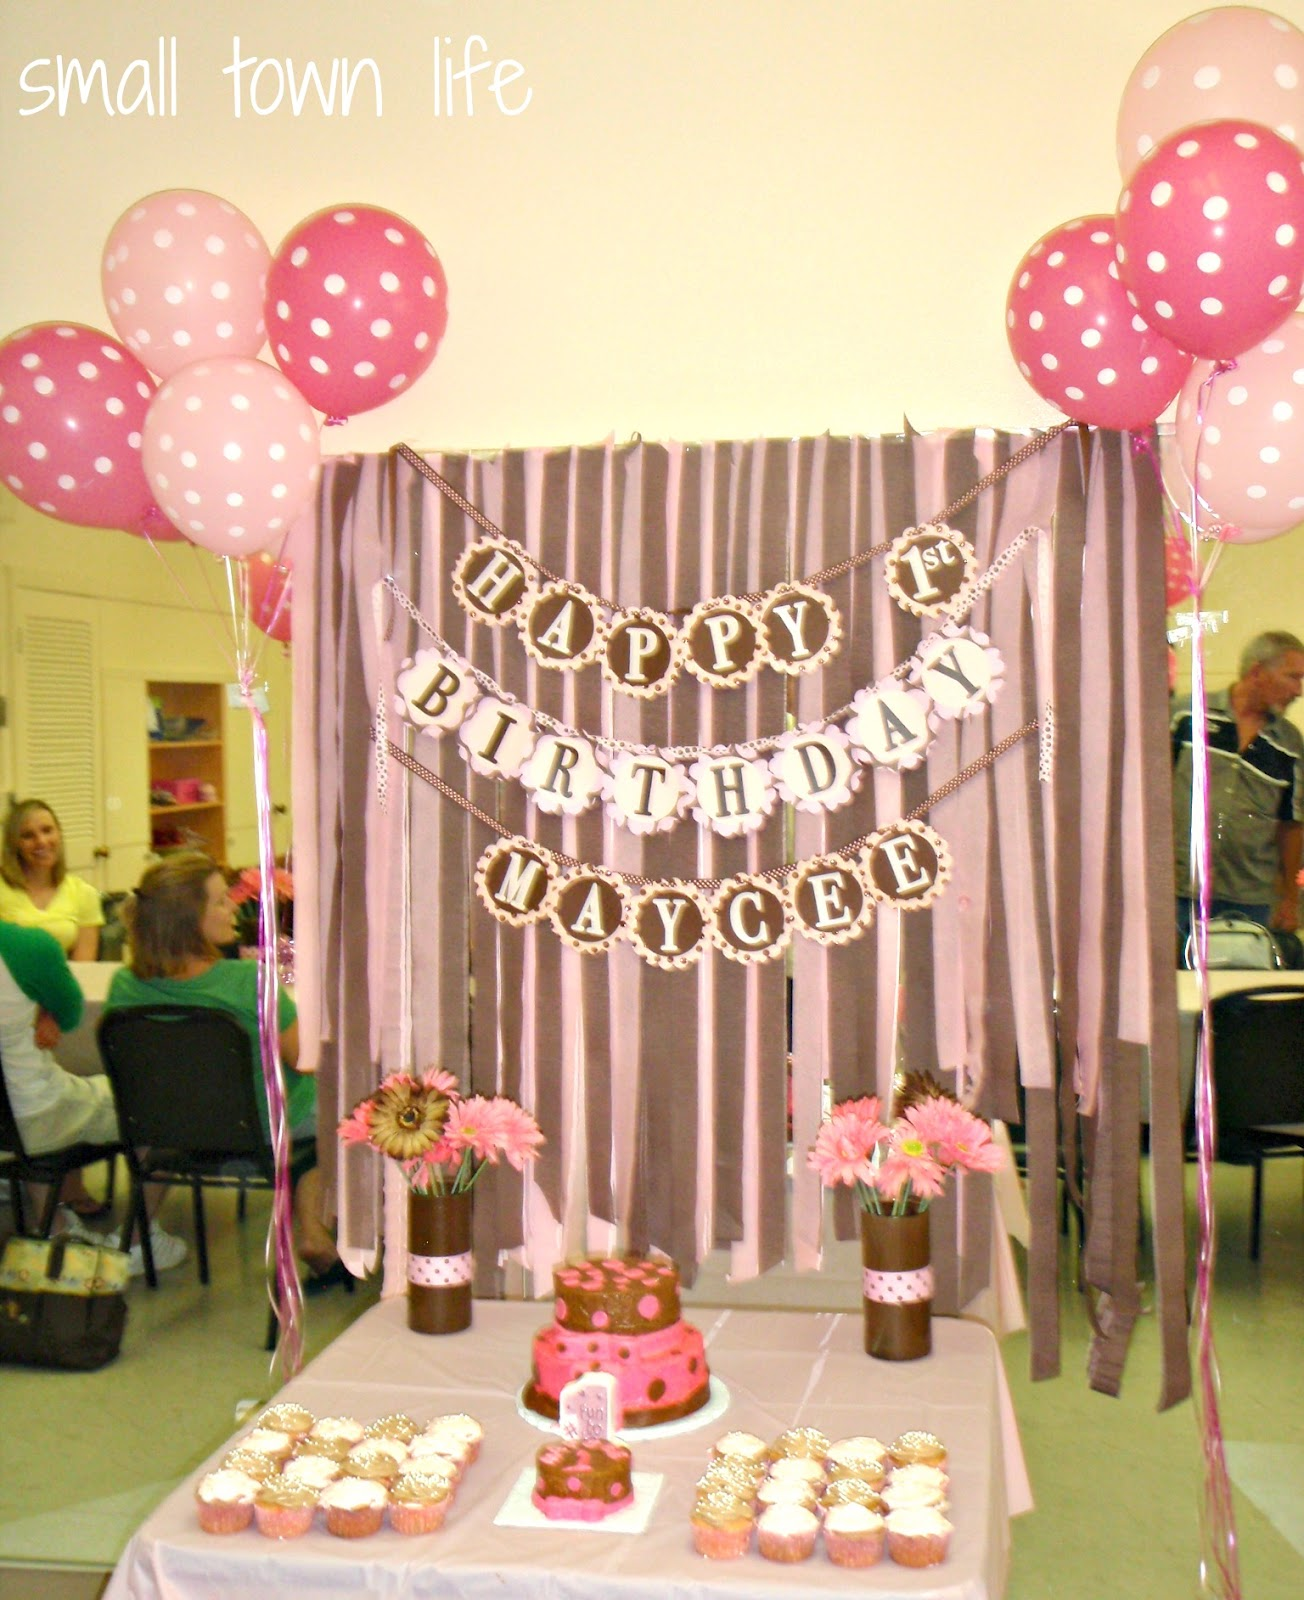 Small Town Life: Maycee's 1st Birthday Party